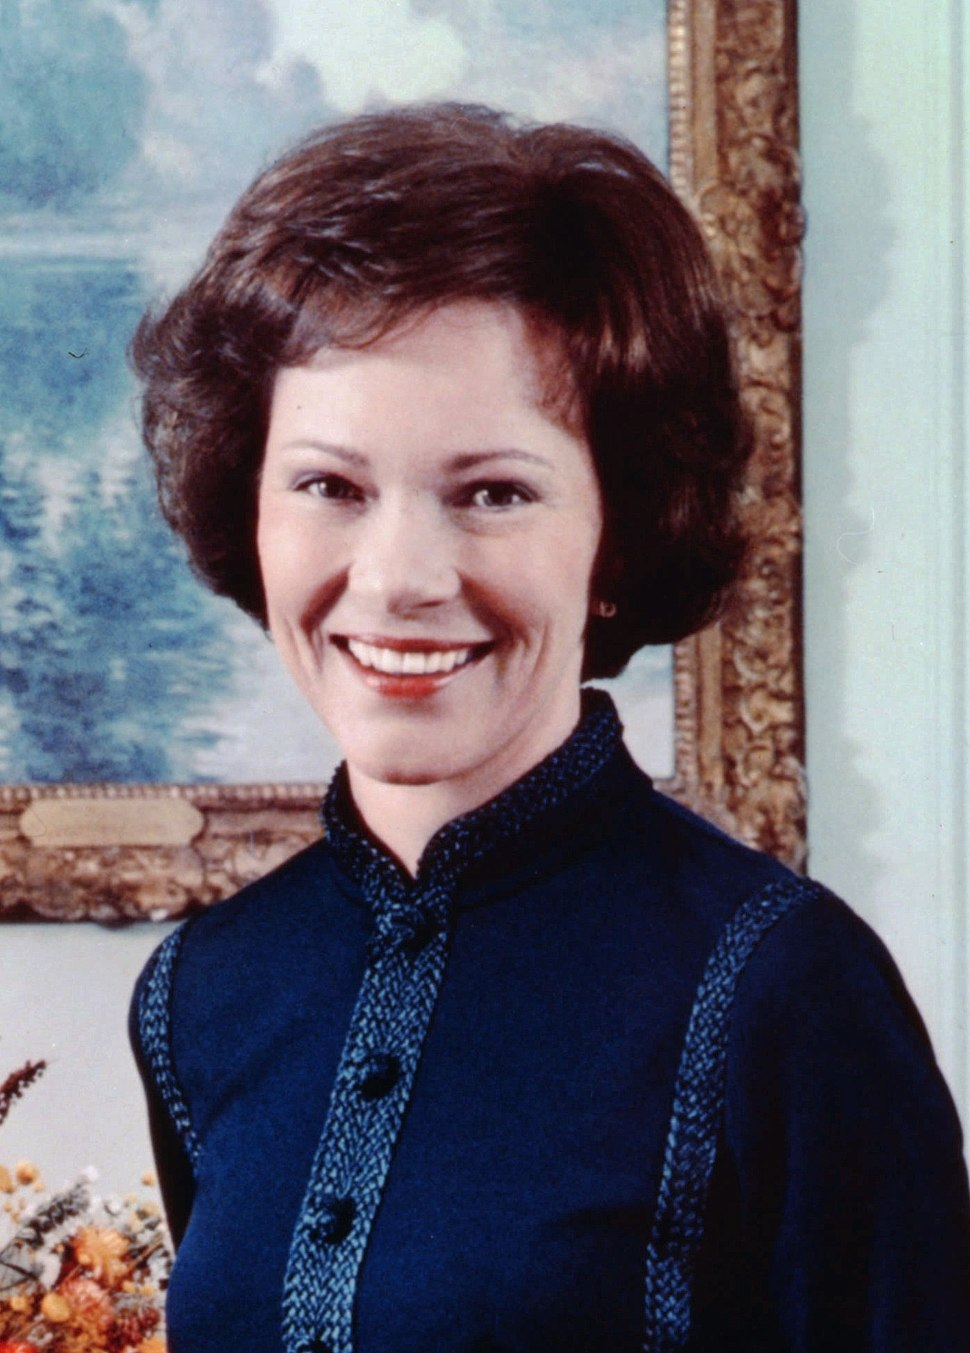 Rose Carter, official color photo, 1977-cropped